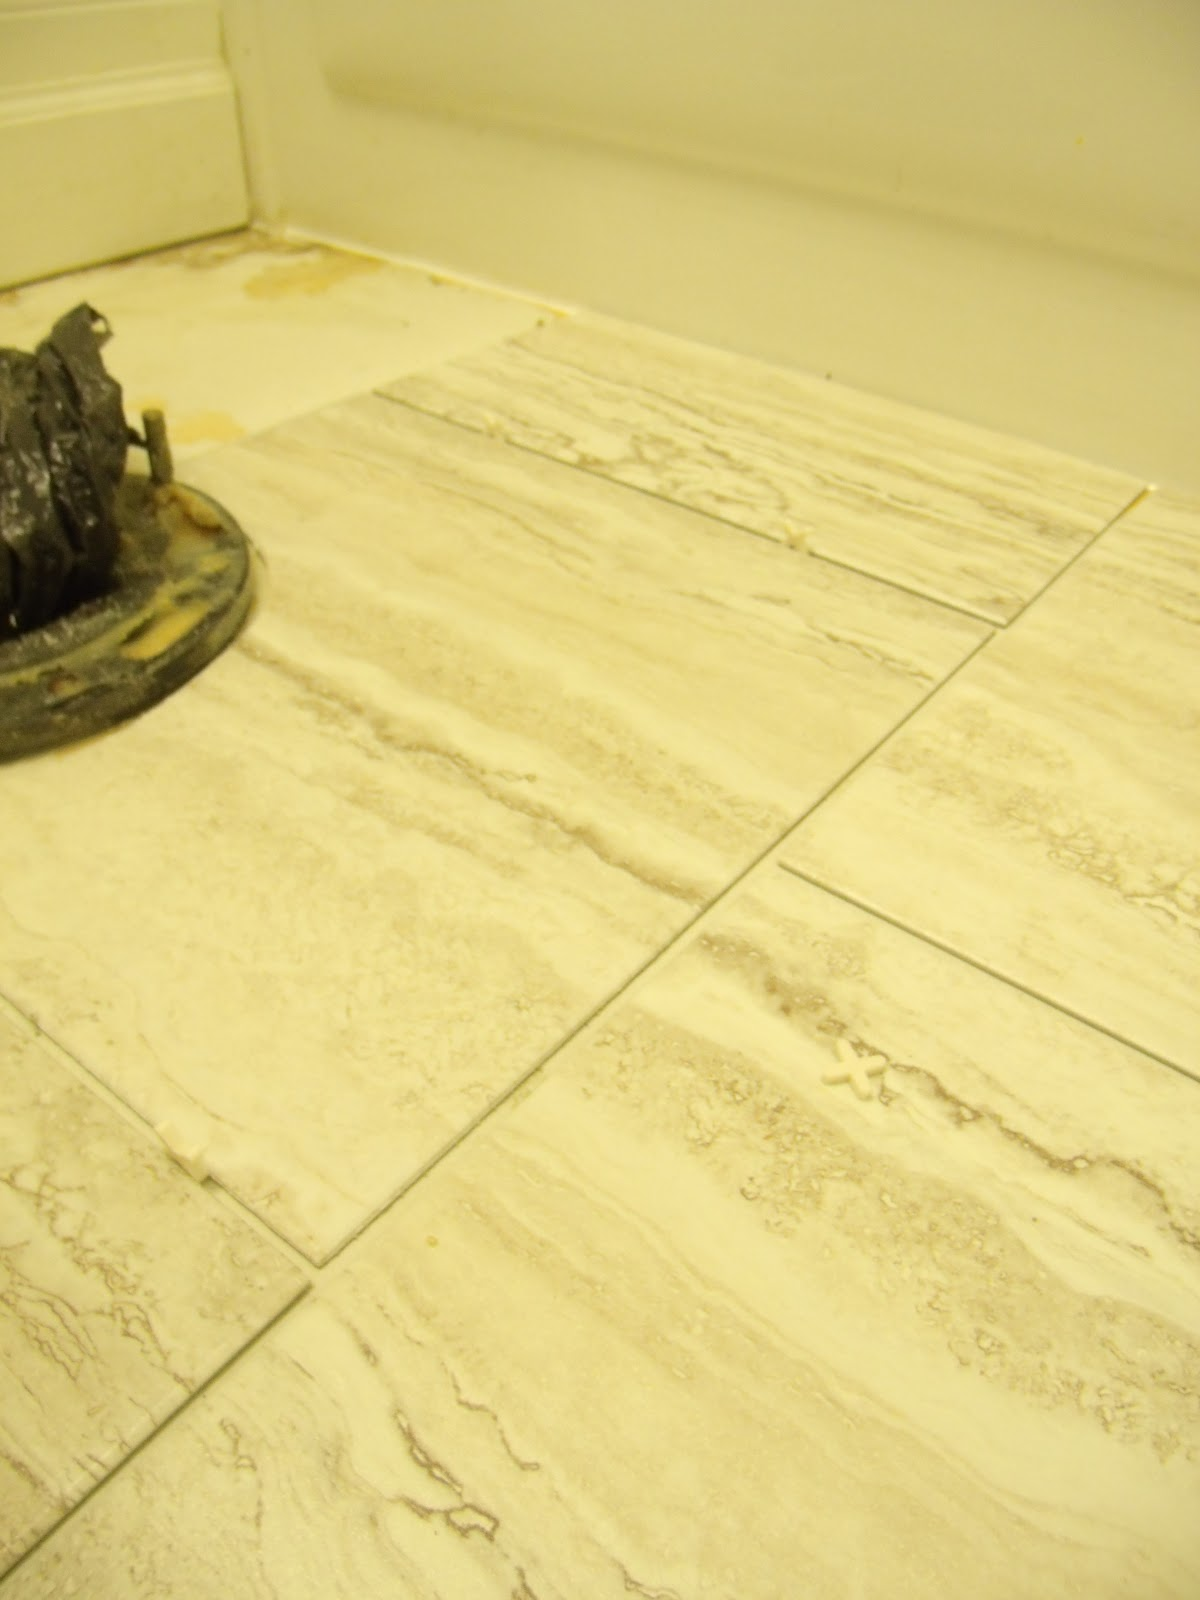 How to install peel and stick vinyl tile that you can grout how to install peel and stick vinyl tile that you can grout frugal family times dailygadgetfo Choice Image